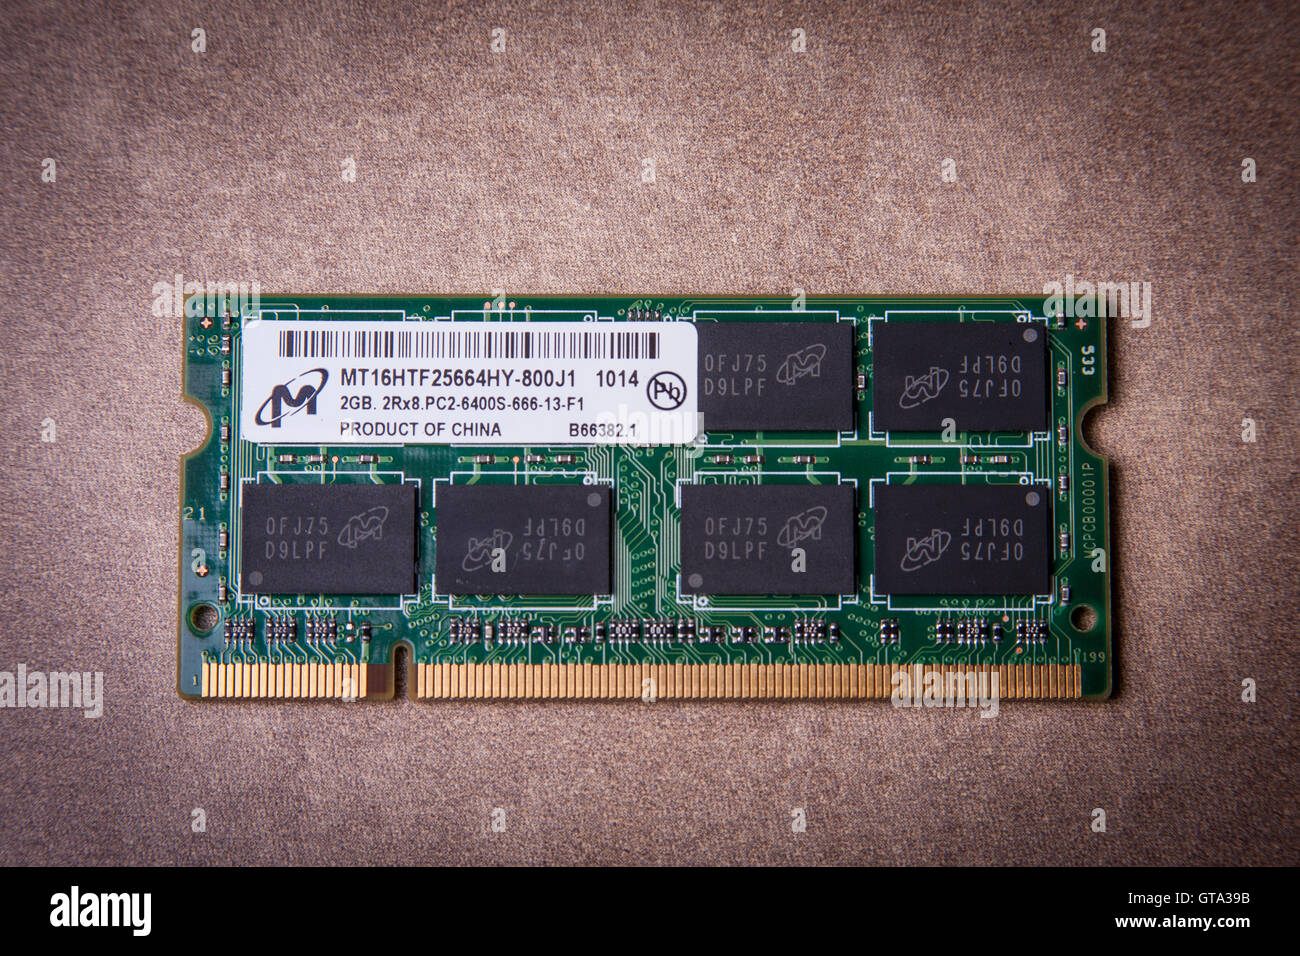 Dimm Stock Photos Images Alamy Ram Laptop Ddr2 2gb Pc2 6400 Asli Jepang Computer Memory Module Image